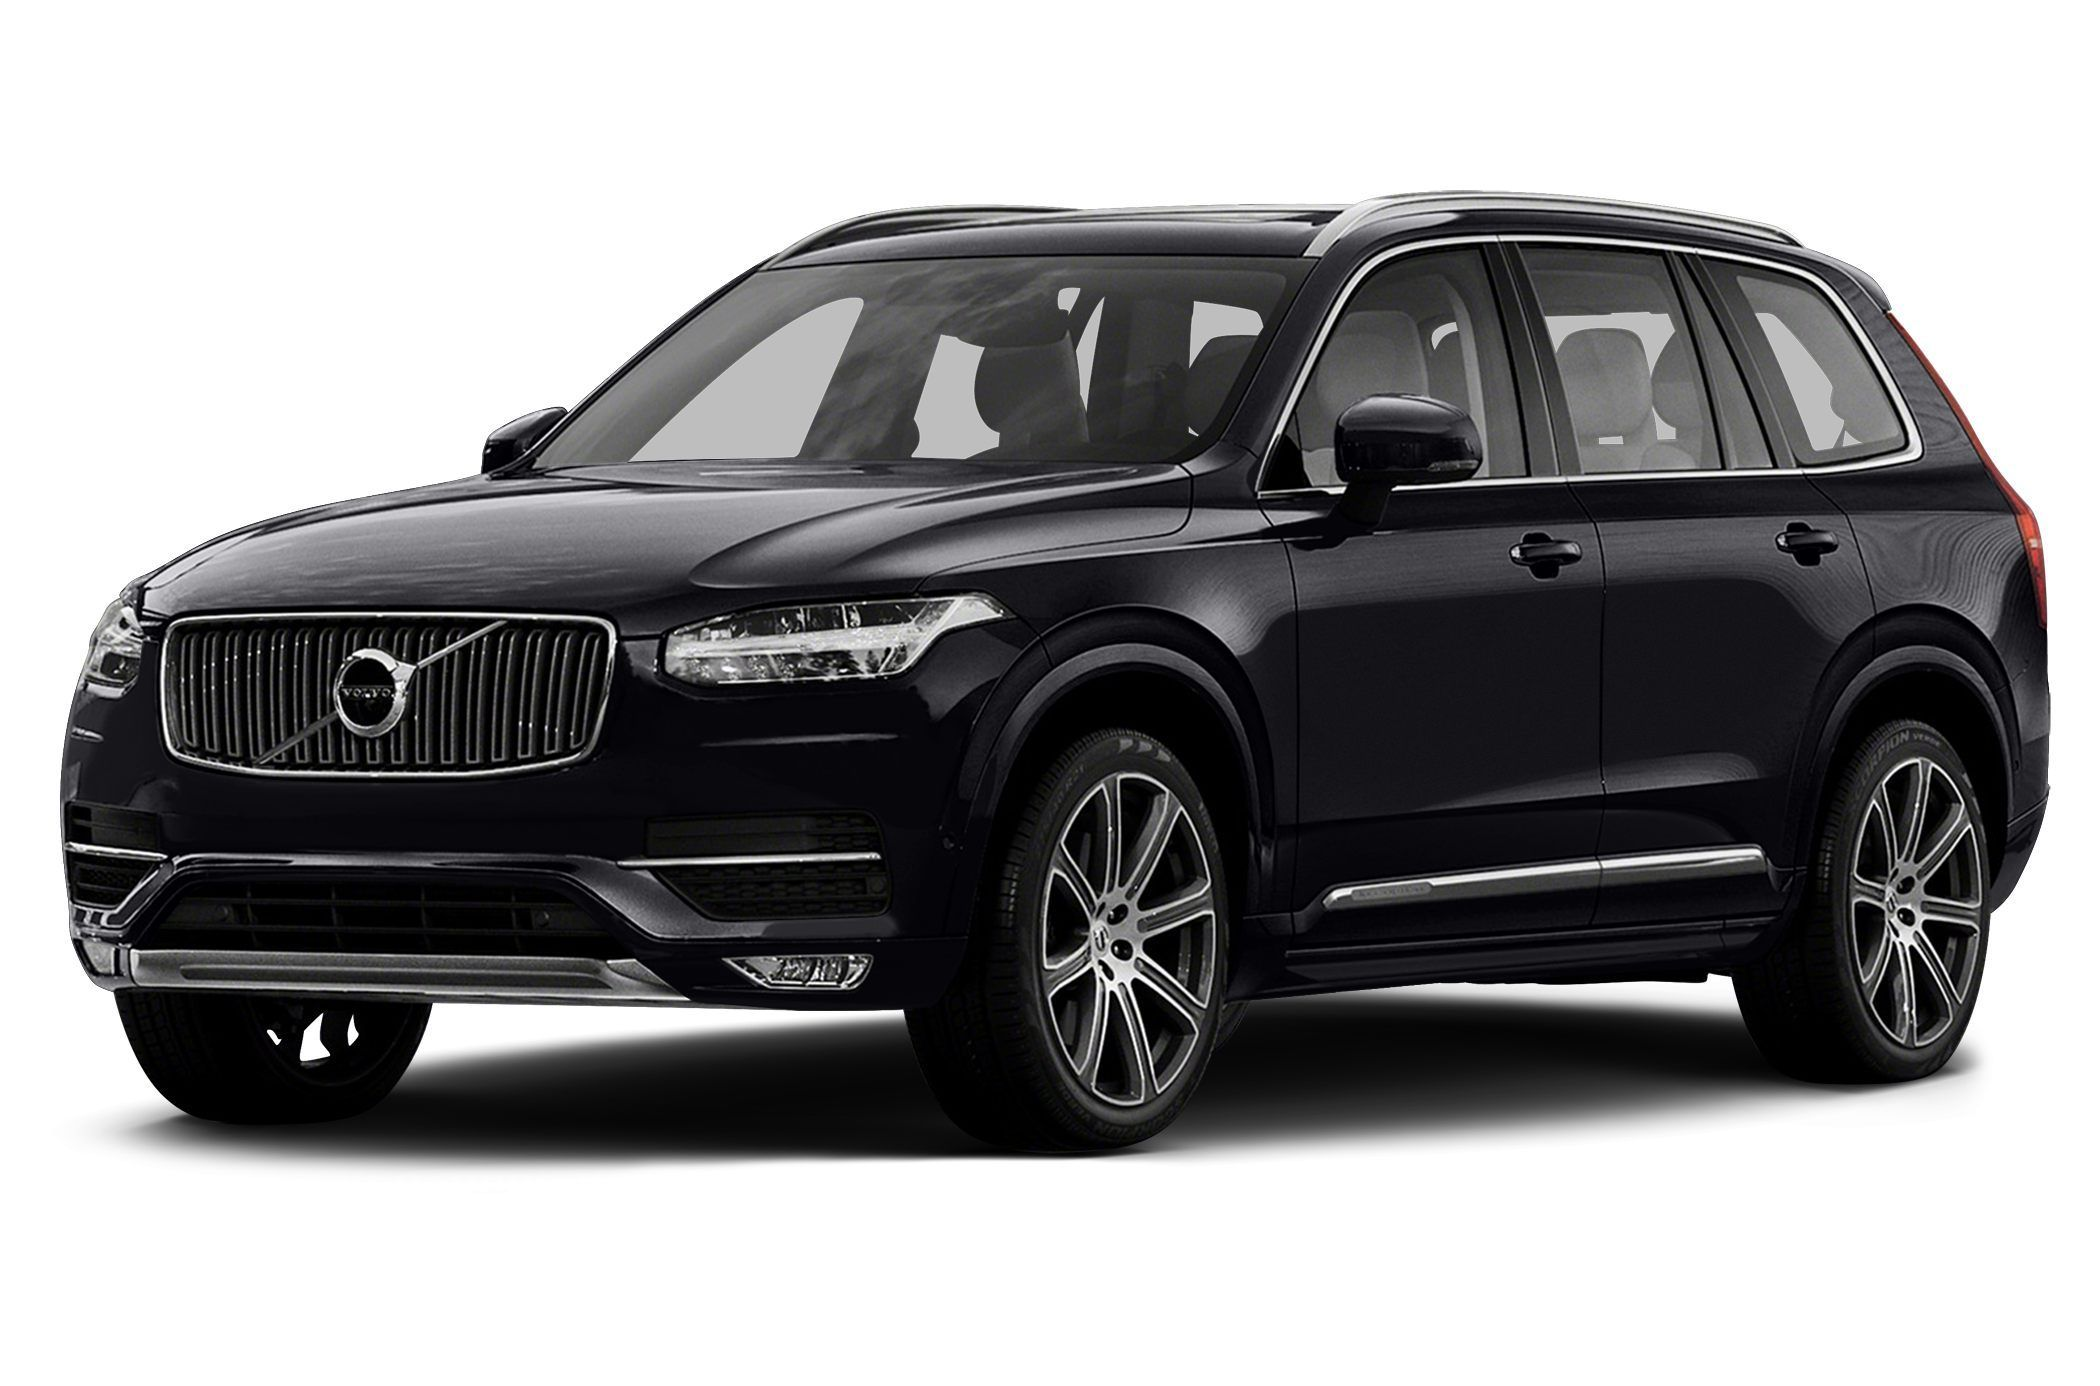 2017 volvo xc90 t6 momentum suv model suv models volvo. Black Bedroom Furniture Sets. Home Design Ideas